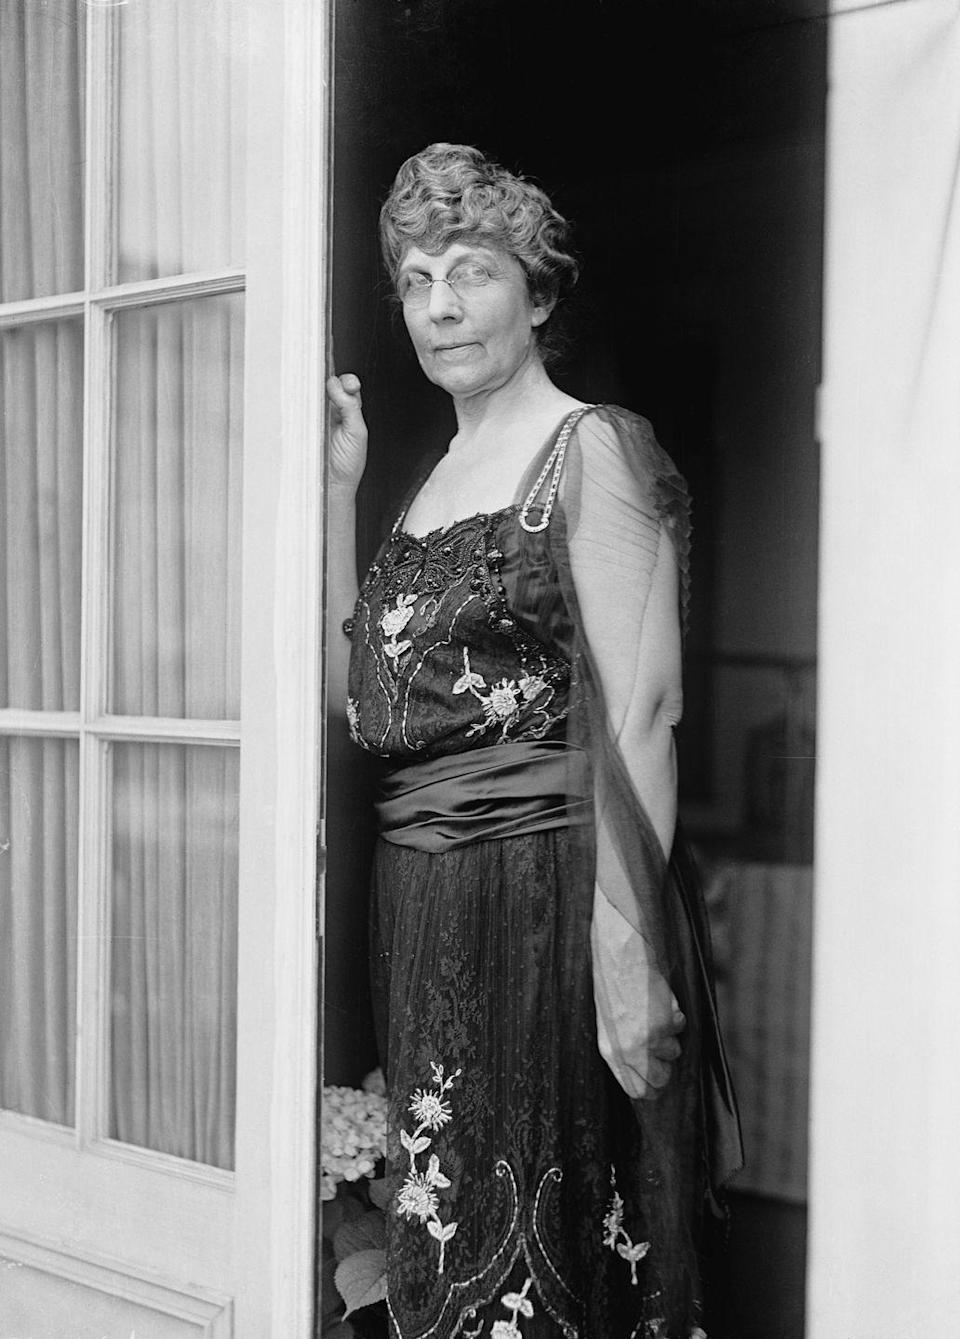 "<p>Florence Harding often wore heavily-<a href=""https://u.osu.edu/clotheslines/2016/10/22/first-lady-fashion-part-i-florence-harding/"" rel=""nofollow noopener"" target=""_blank"" data-ylk=""slk:beaded dresses"" class=""link rapid-noclick-resp"">beaded dresses</a> and fur pieces. This dress, pictured here, is so heavy that the dress has to be laid down sideways to avoid ruin when not on display. Crazy, I know!</p>"